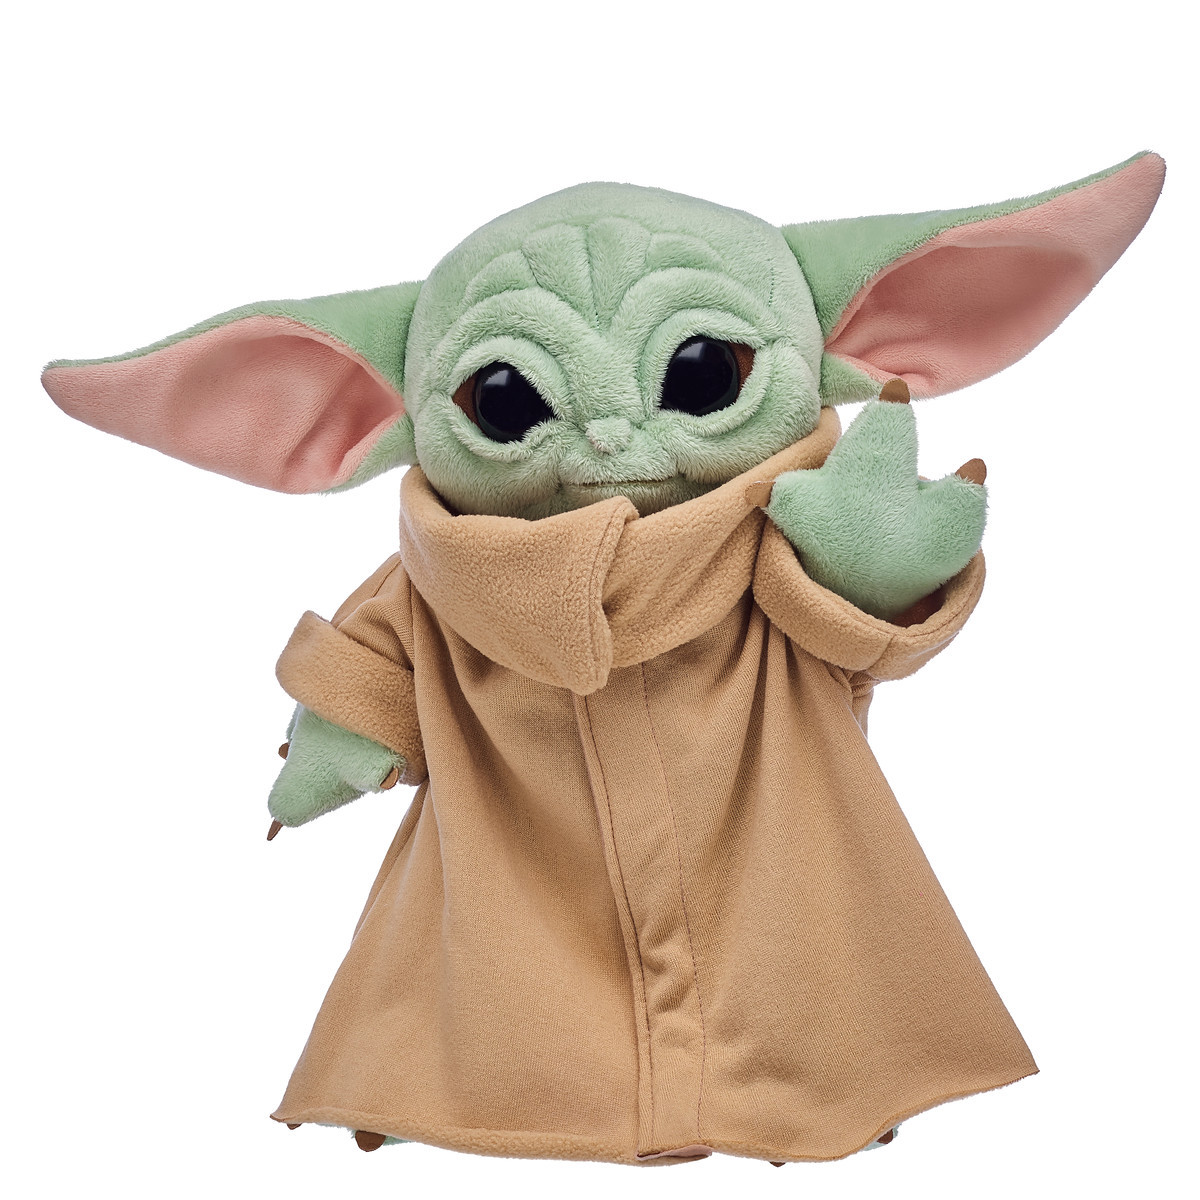 All New STAR WARS and Baby Yoda Merchandise Announced_2